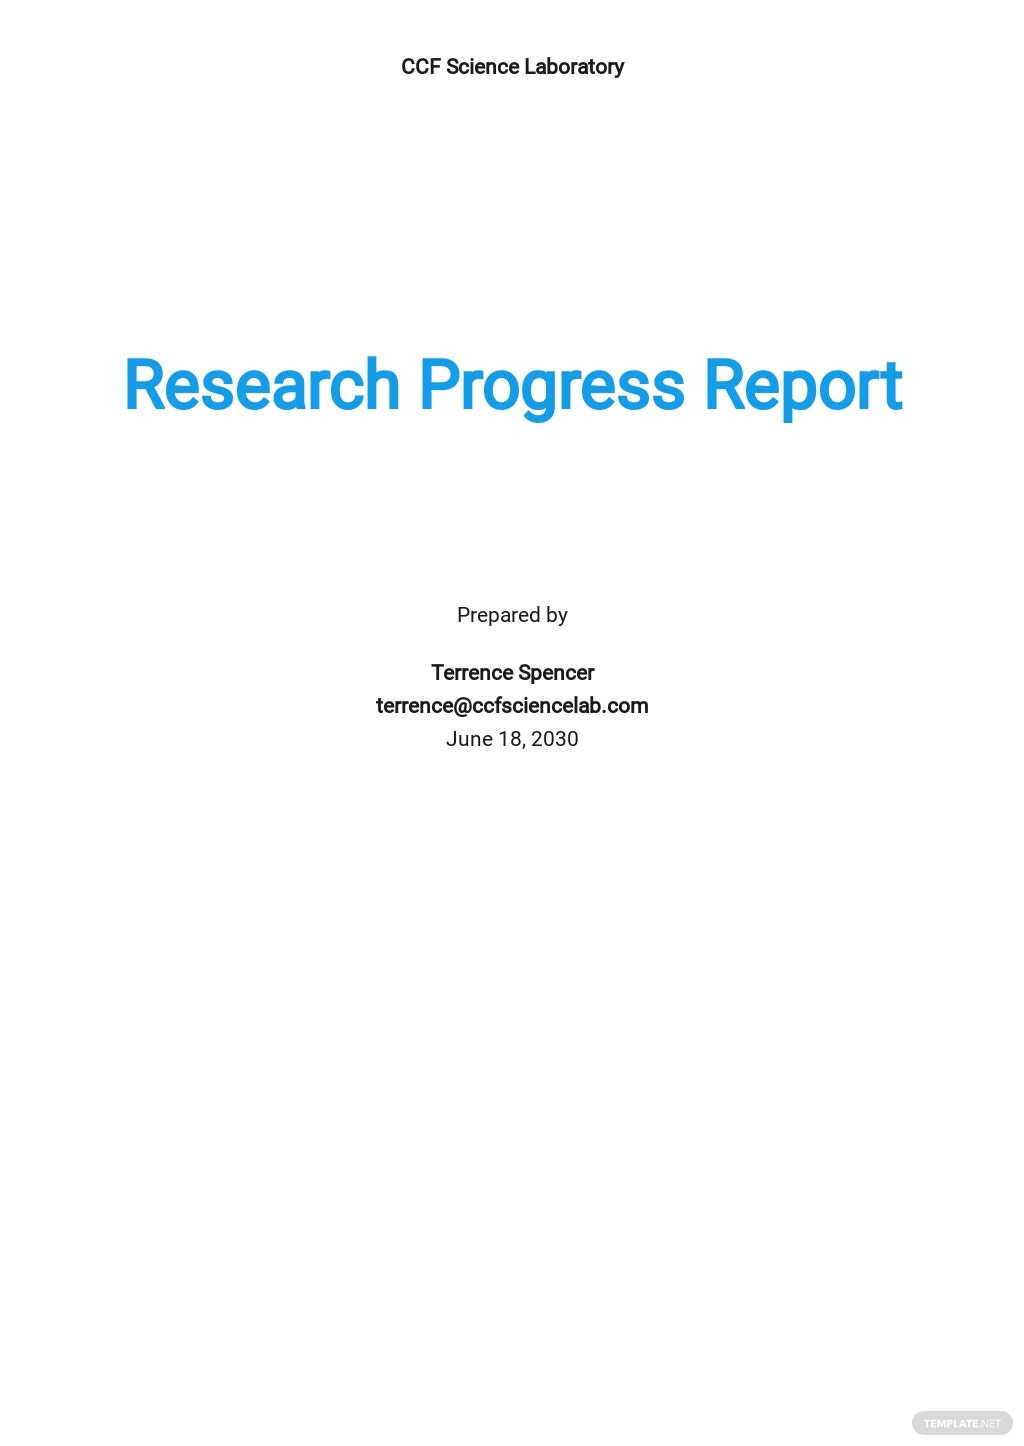 Research Progress Report Template